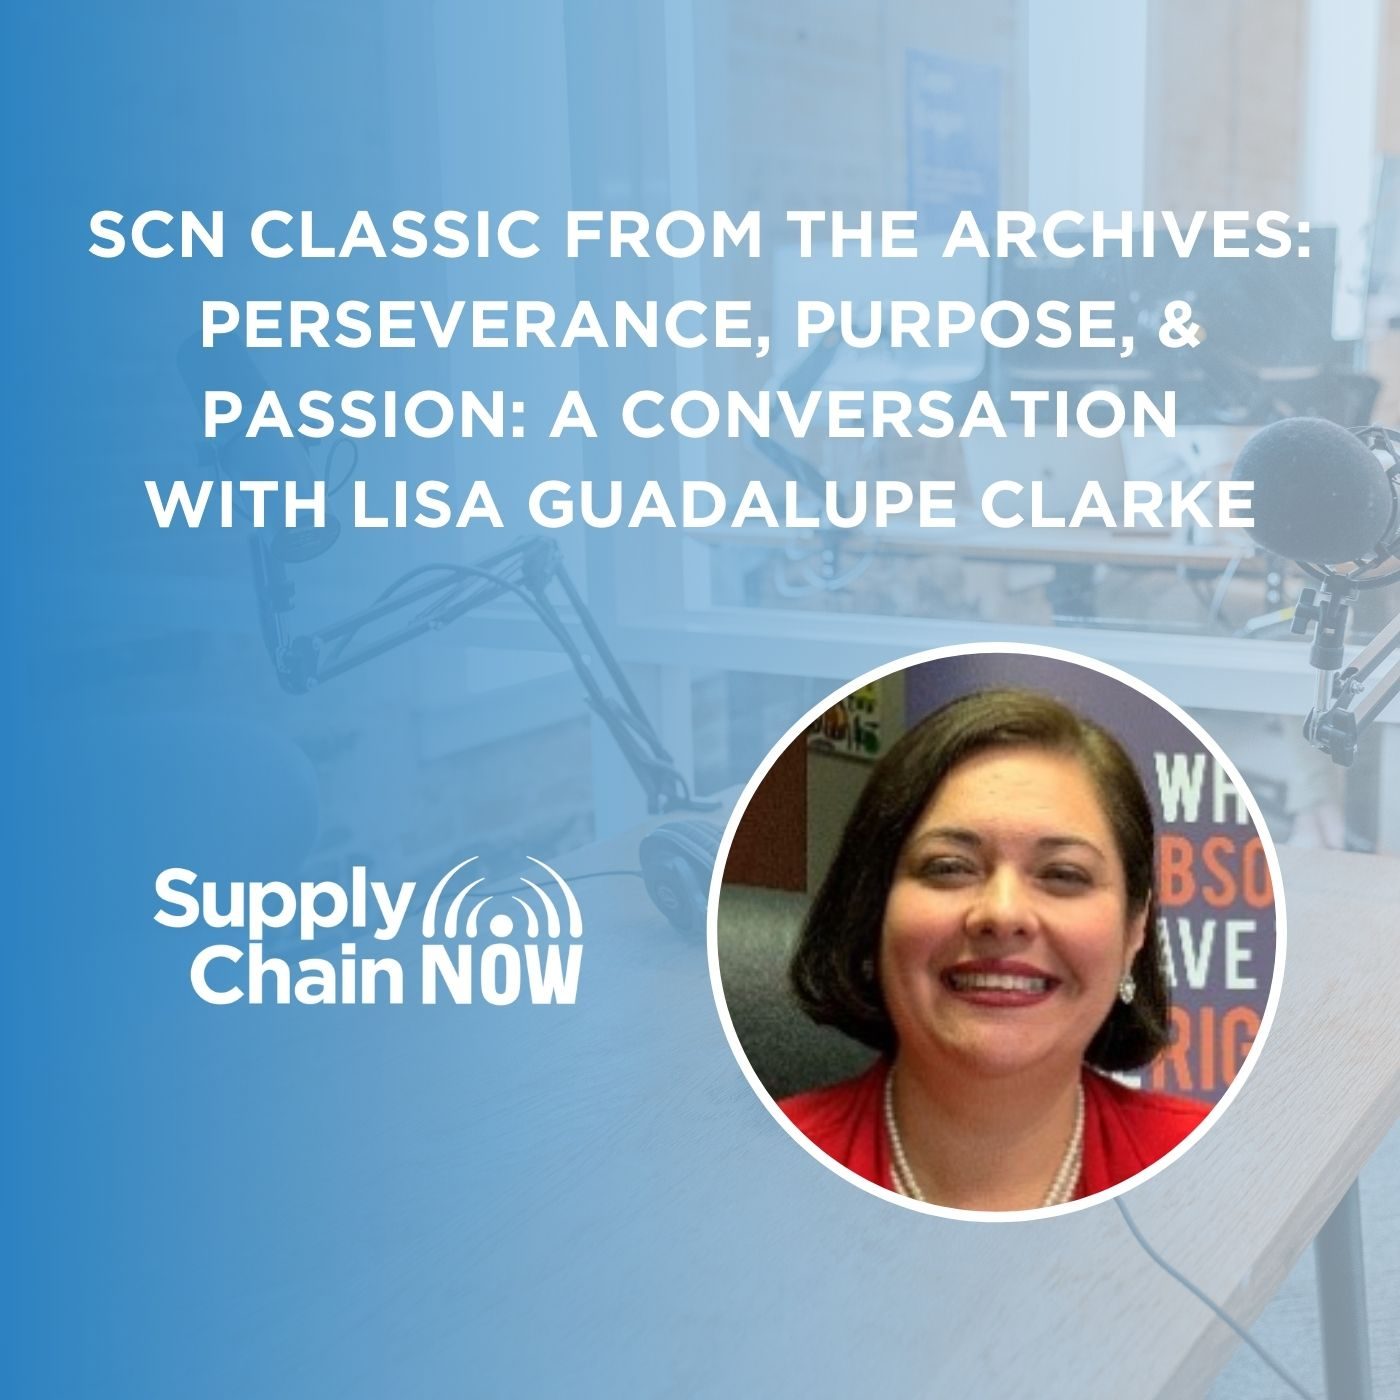 SCN Classic from the Archives: Perseverance, Purpose, & Passion: A Conversation with Lisa Guadalupe Clarke